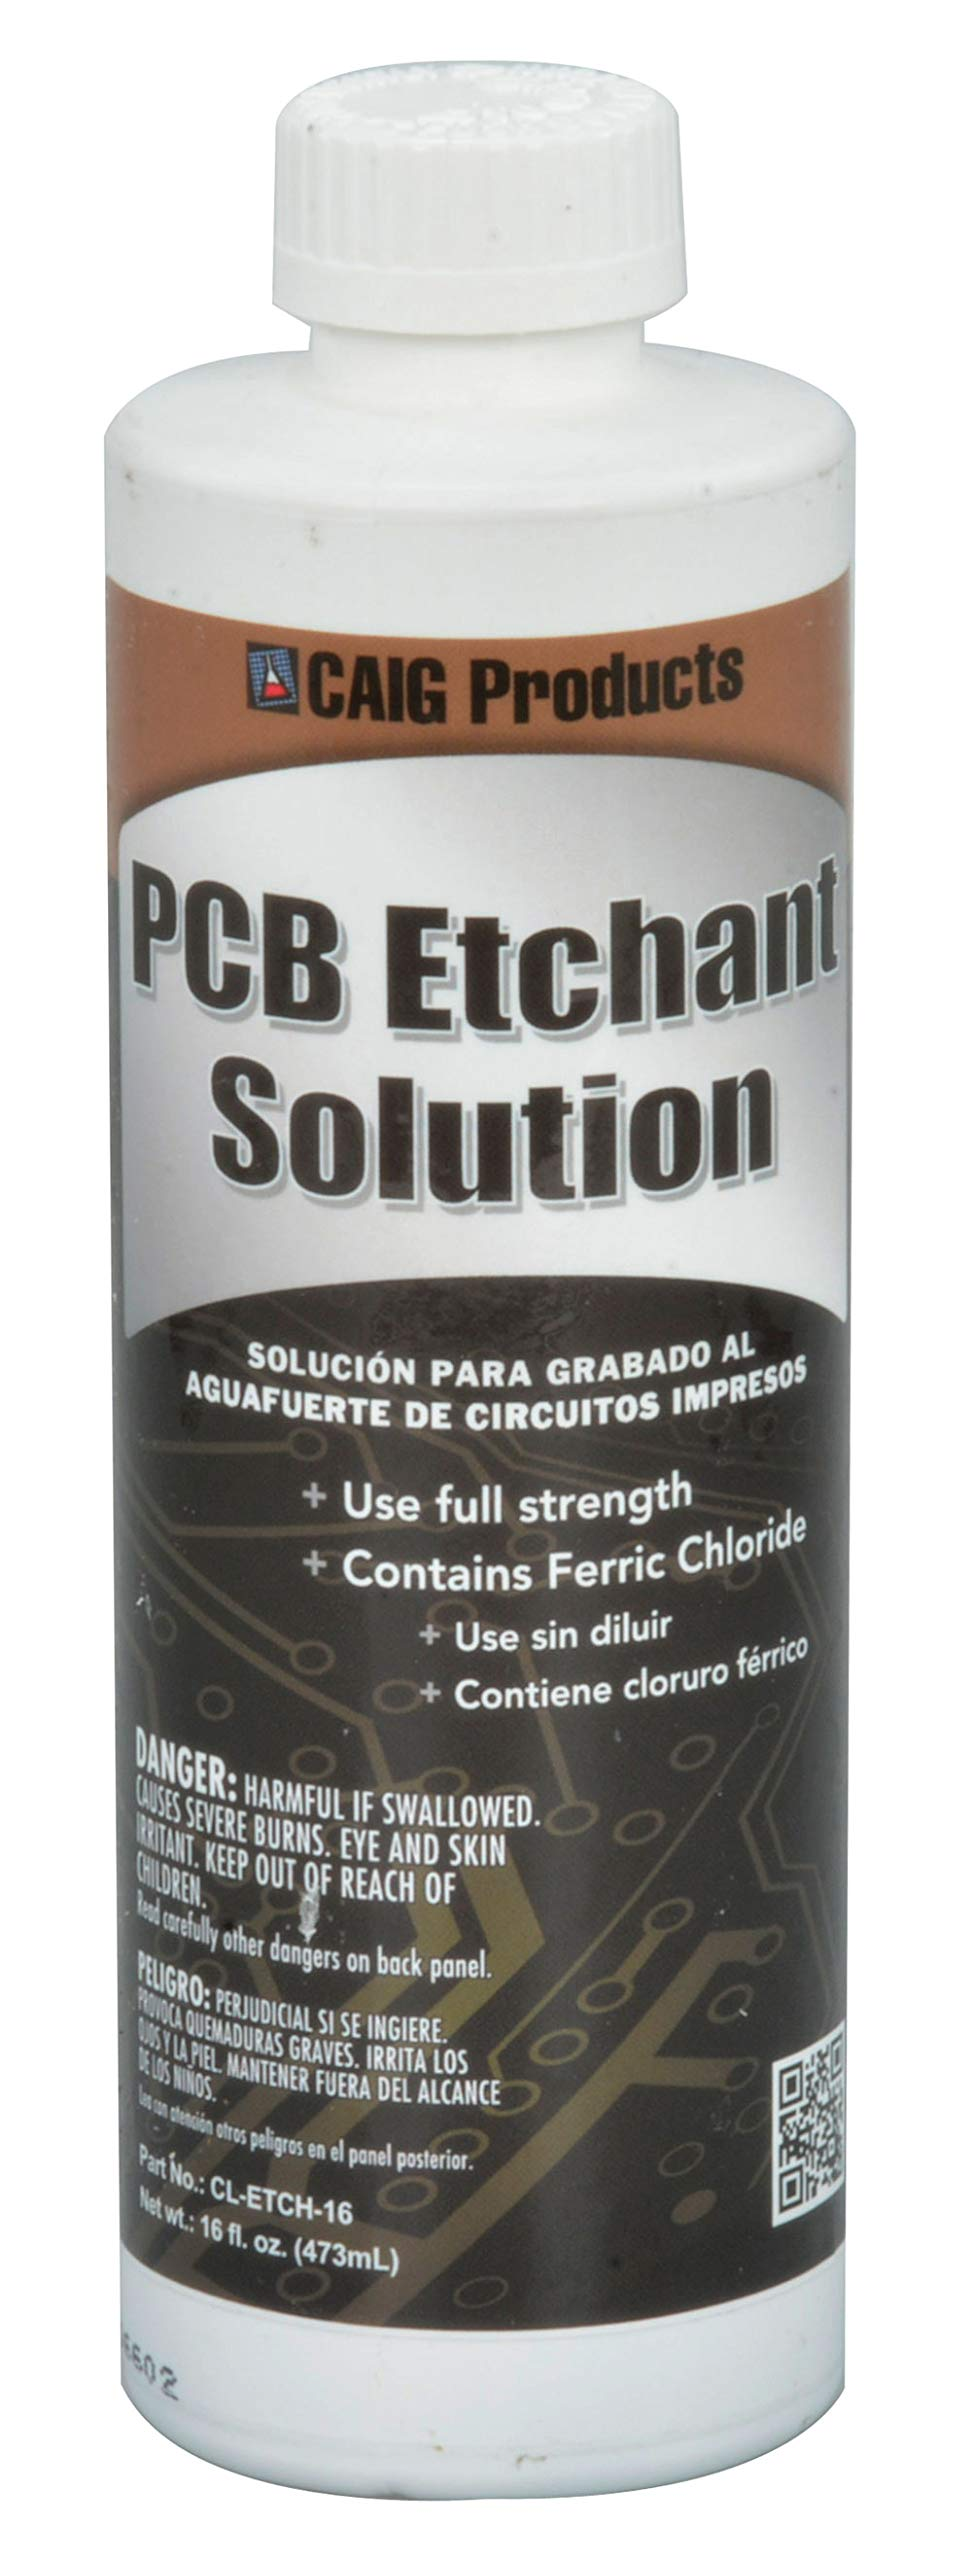 Caig Labs CL-ETCH-16 Ferric Chloride PCB Etchant Solution 16oz Bottle